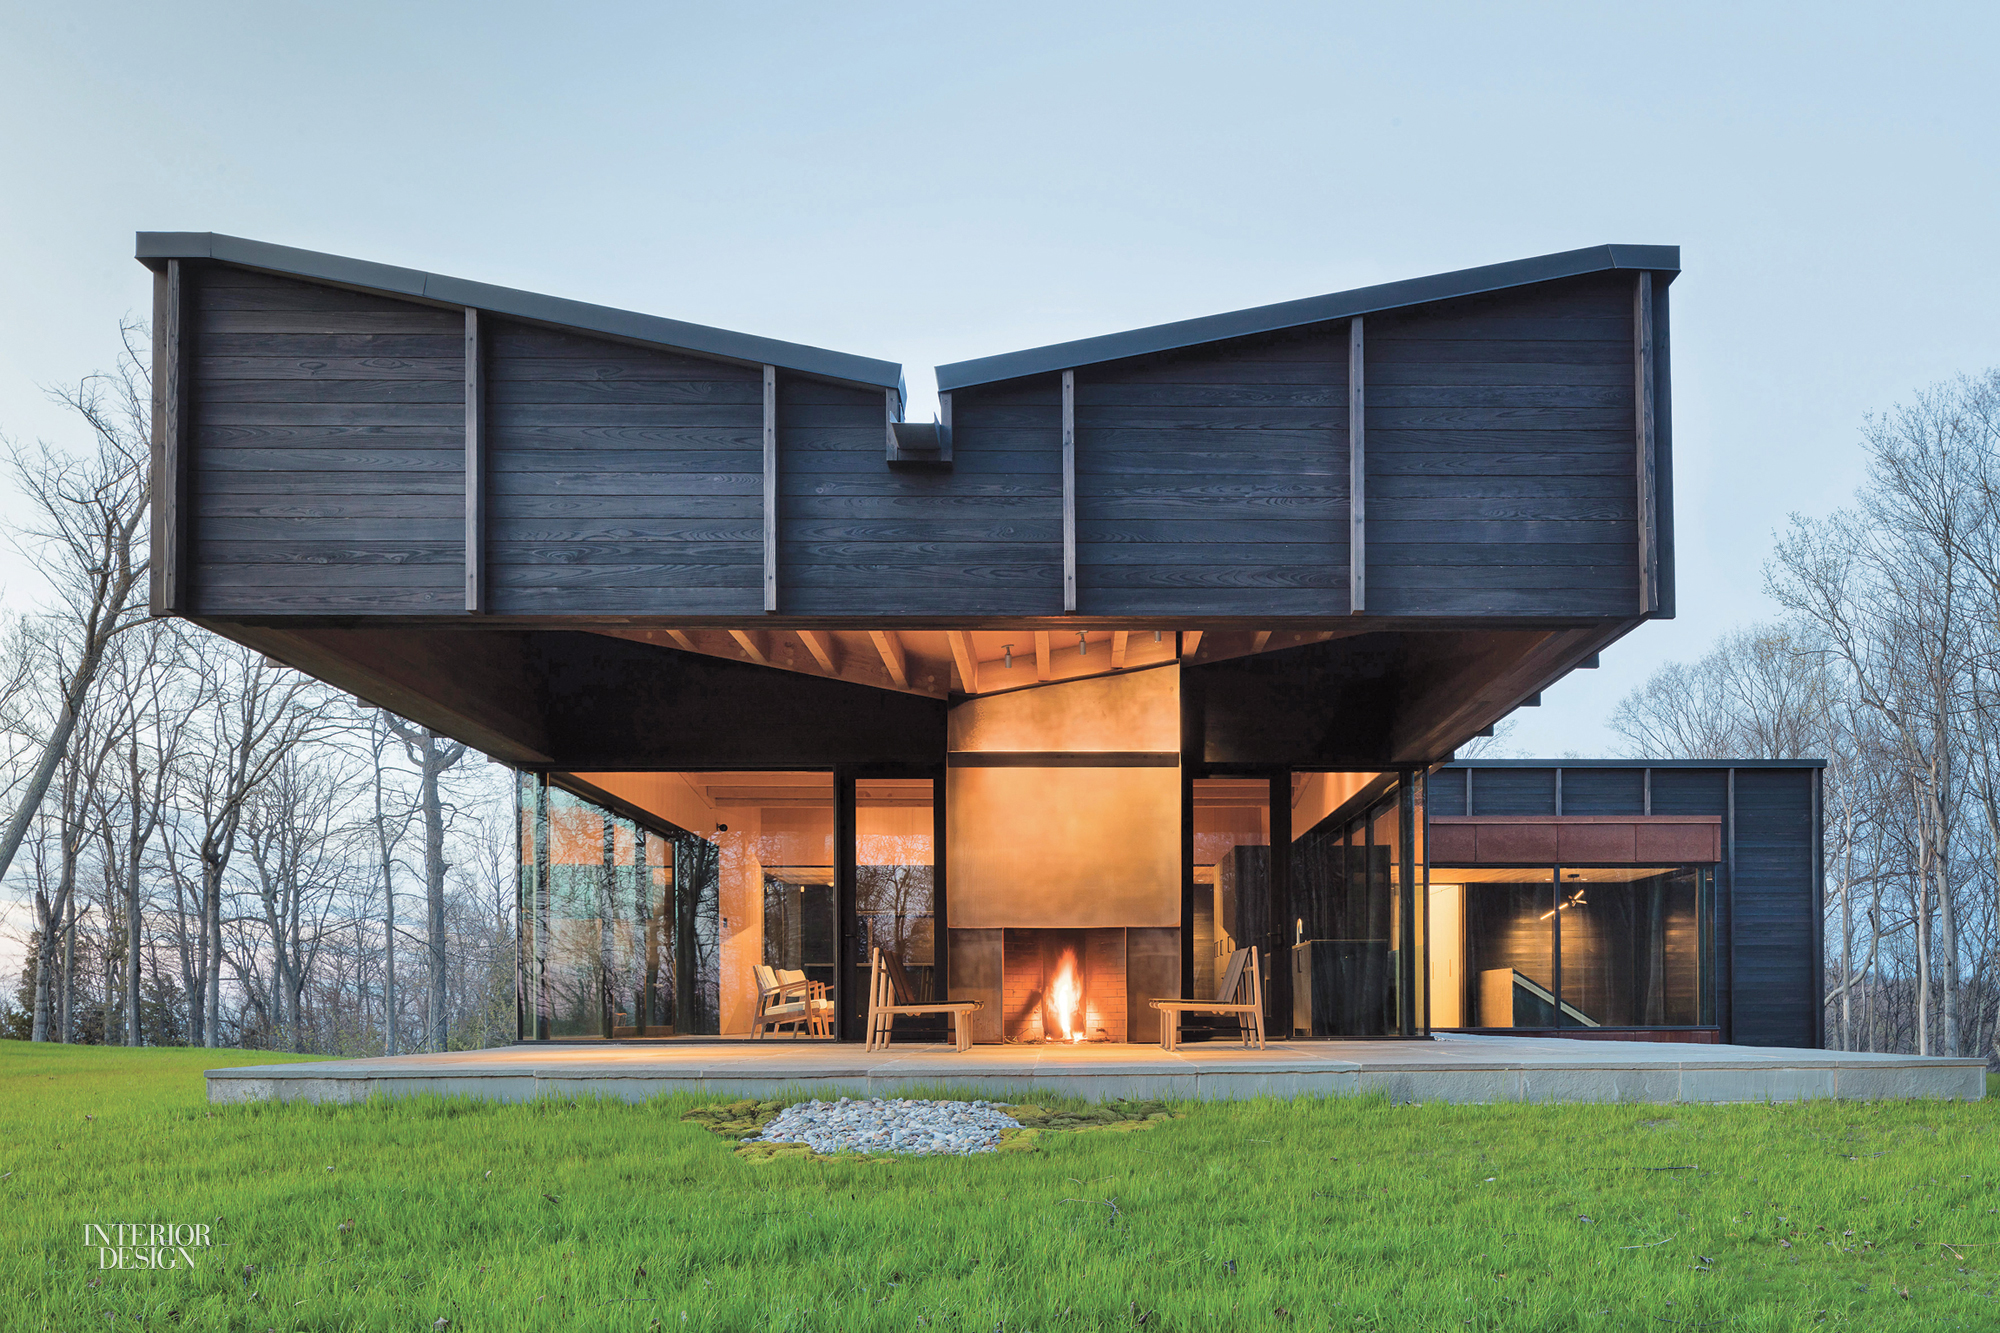 Michigan Lake House By Desai Chia Architecture: 2016 Best Of Year Winner  For Country House